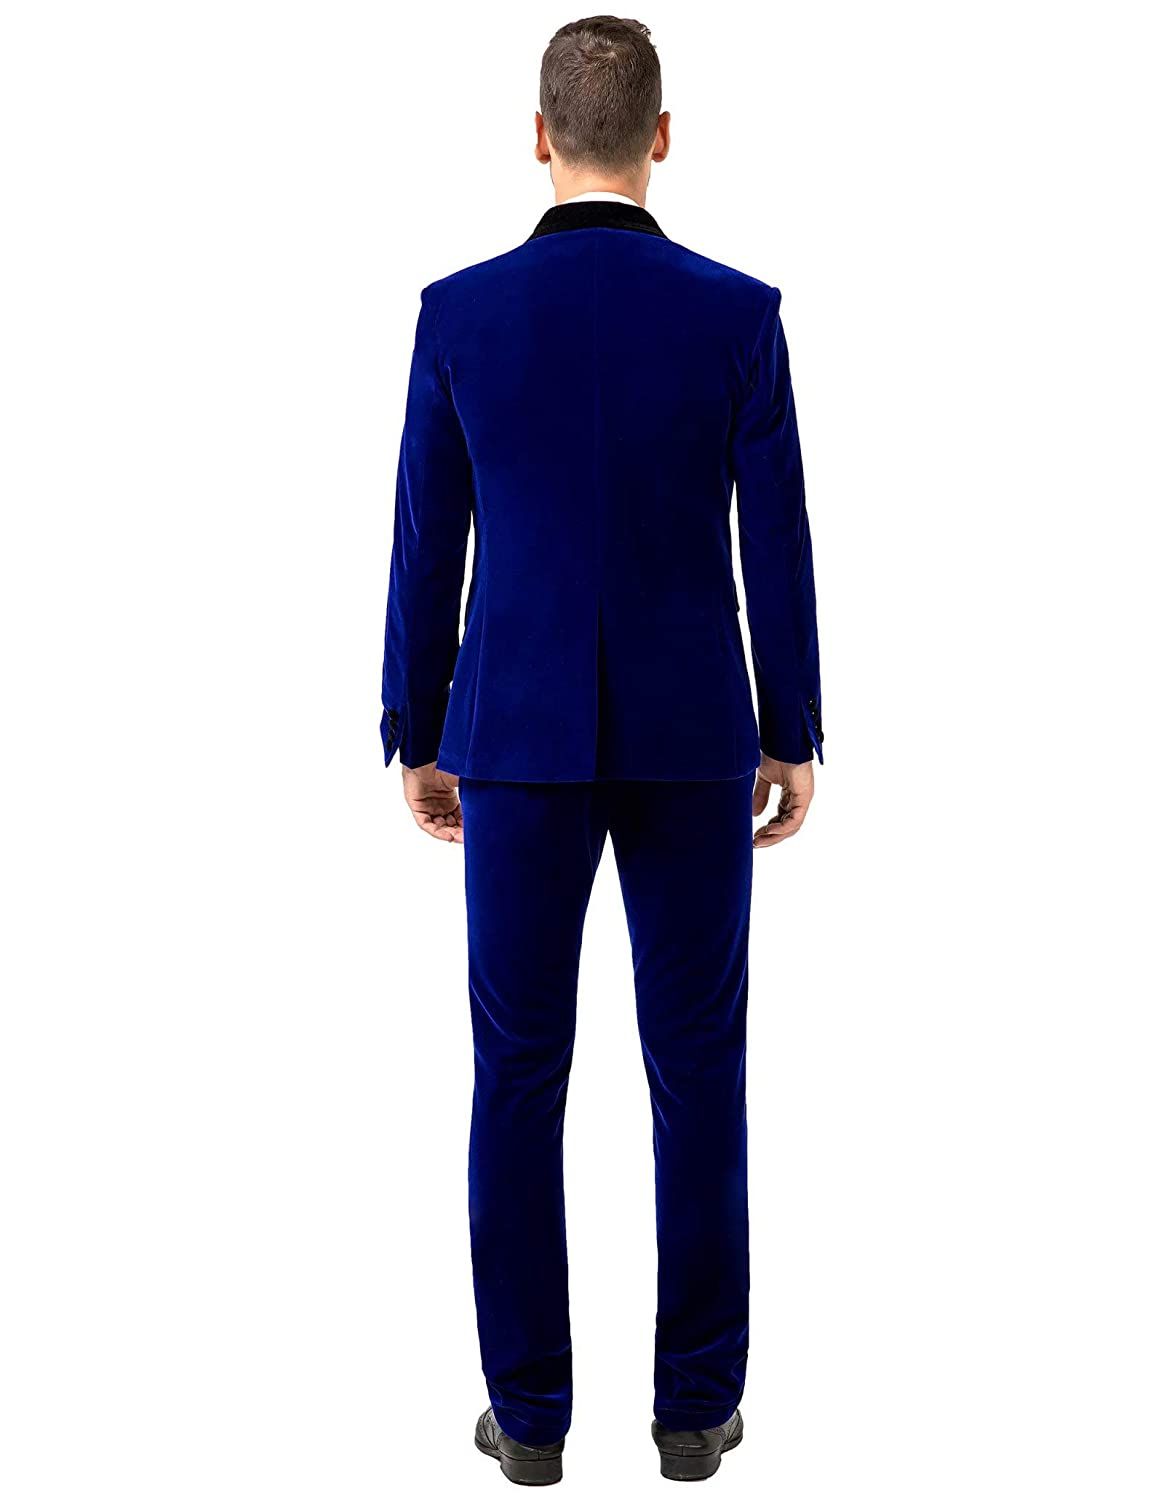 Jingmo Burgundy Royal Blue Black Velvet 3 Piece Suits for Men Classic Tuxedo Blazer Vest Pants